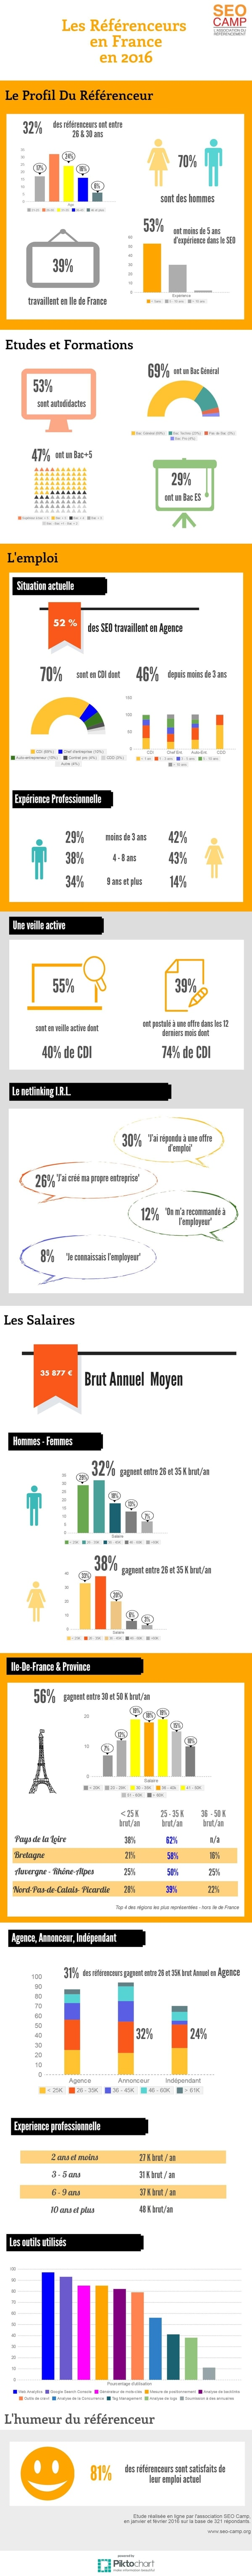 infographie consultant seo